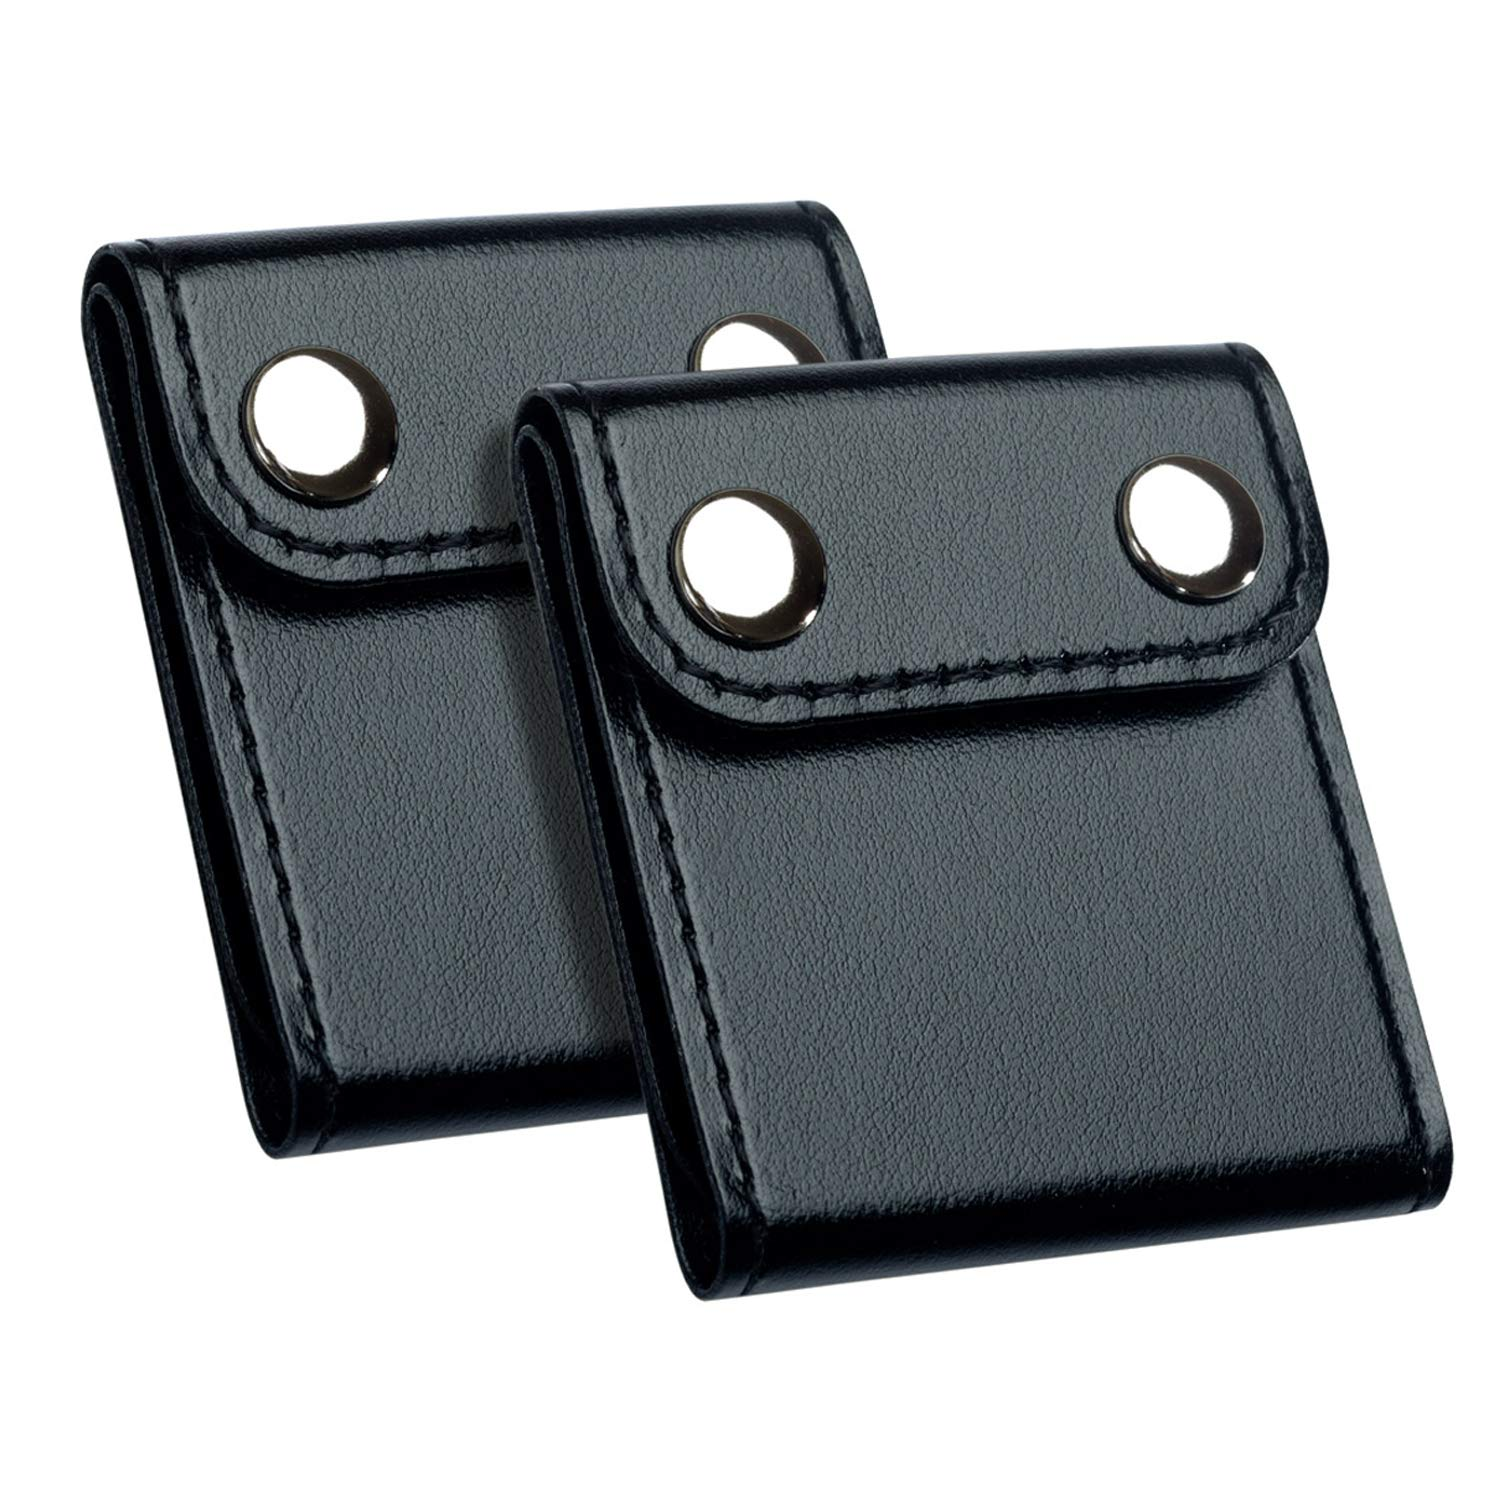 Seat Belt Adjuster Positioner Clips - DYKEISS Comfort Universal Auto Shoulder Neck Strap Safety Positioner, PU Leather Vehicle Car Seatbelt Locking Covers for Kids Adults, 2 Pack (Black)